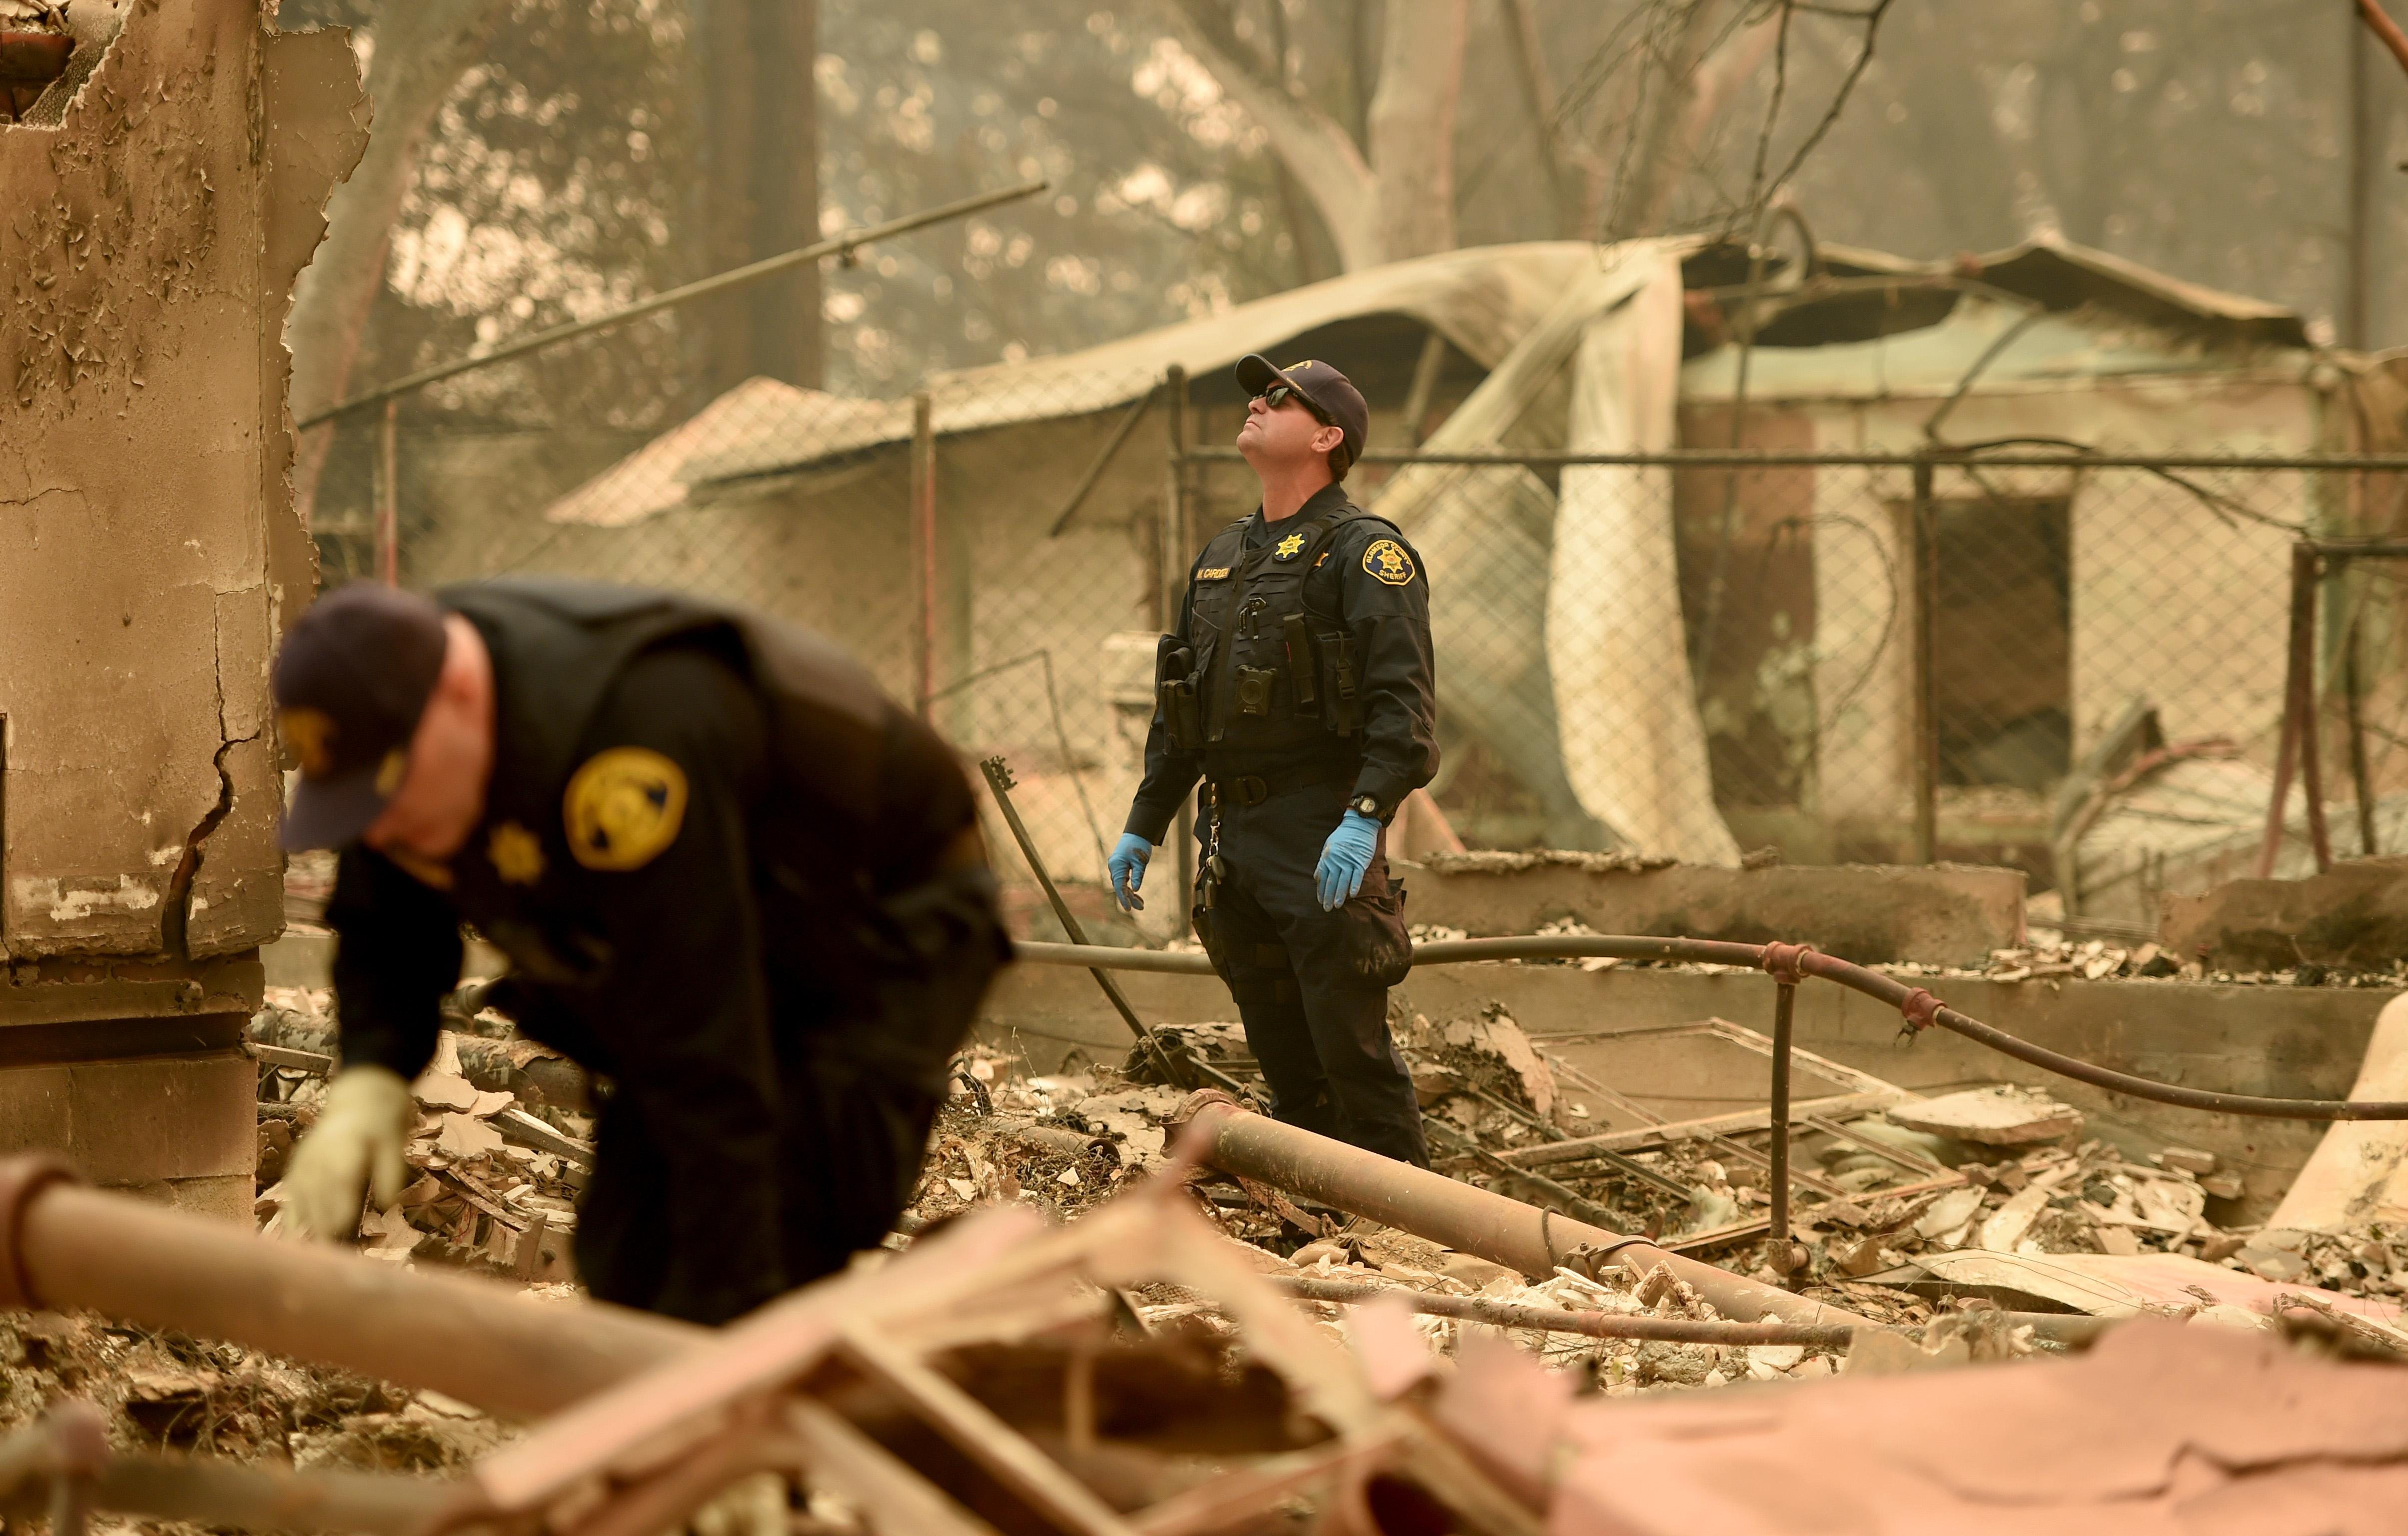 In the burned wreckage of a home, two officers wearing gloves look through the rubble. A layer of ash coats everything.